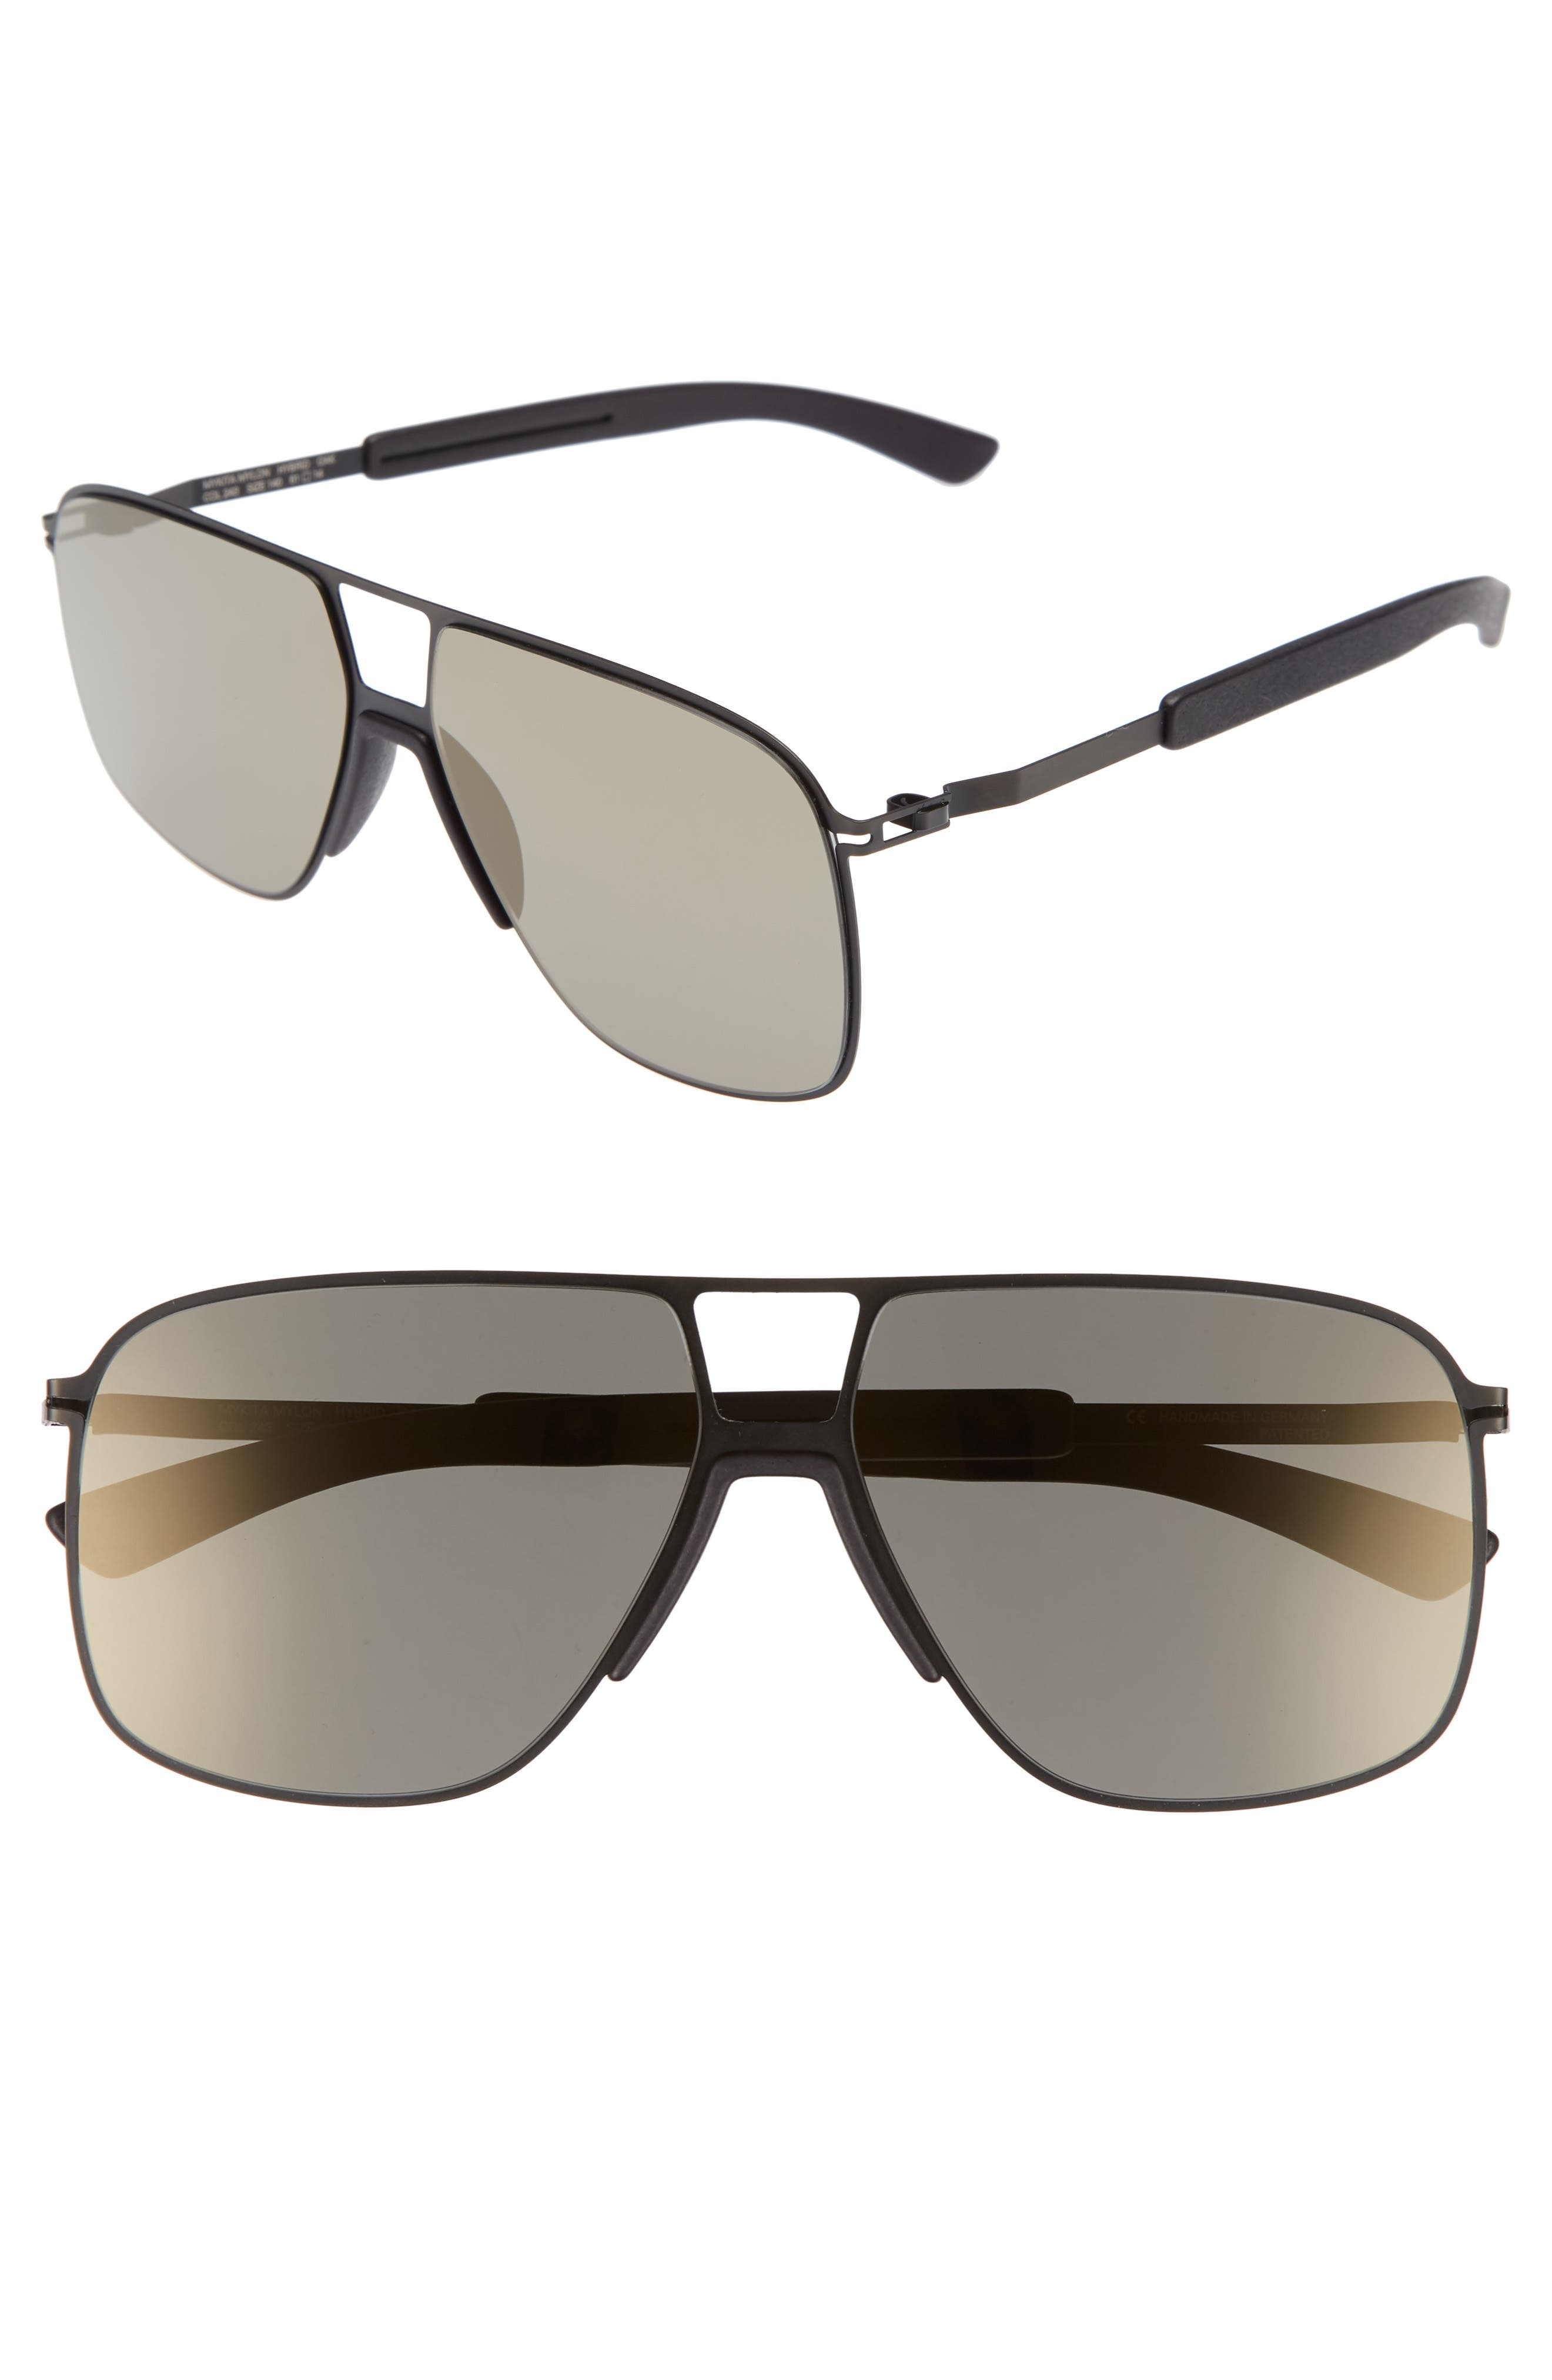 Oak 61mm Aviator Sunglasses,                         Main,                         color, Black/ Pitch Black